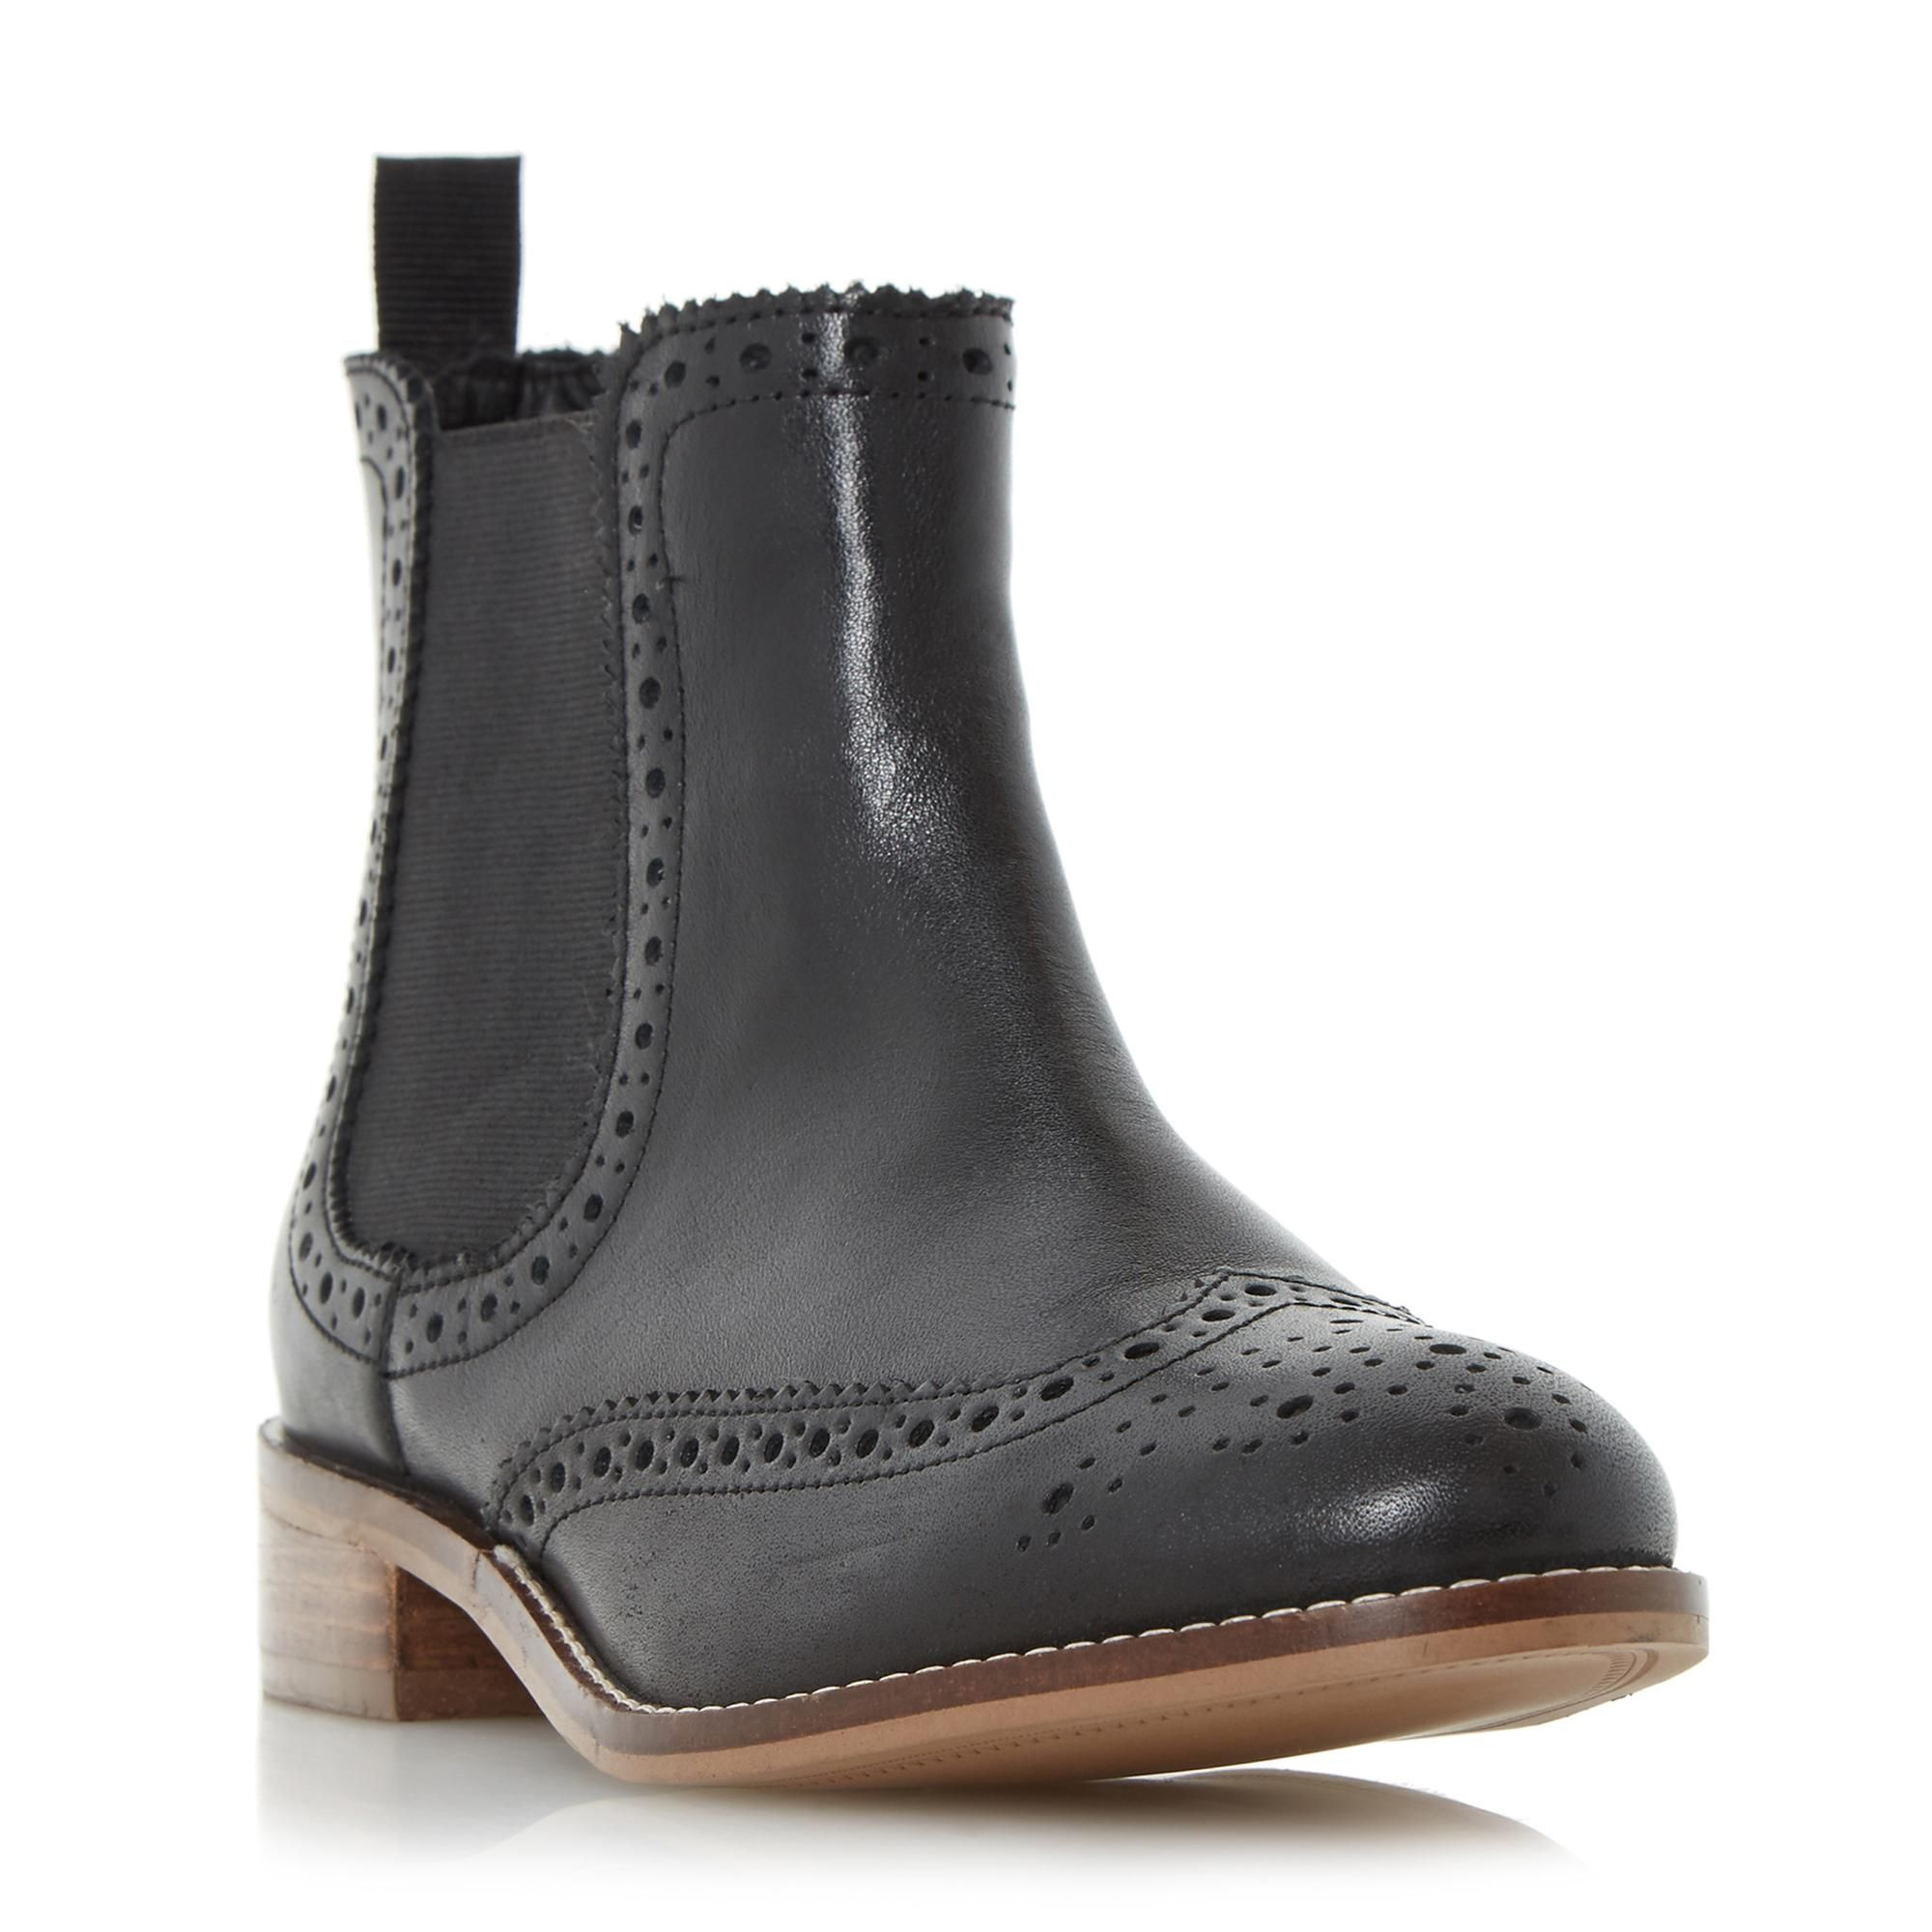 Dune Quentons Brogue Chelsea Boots at